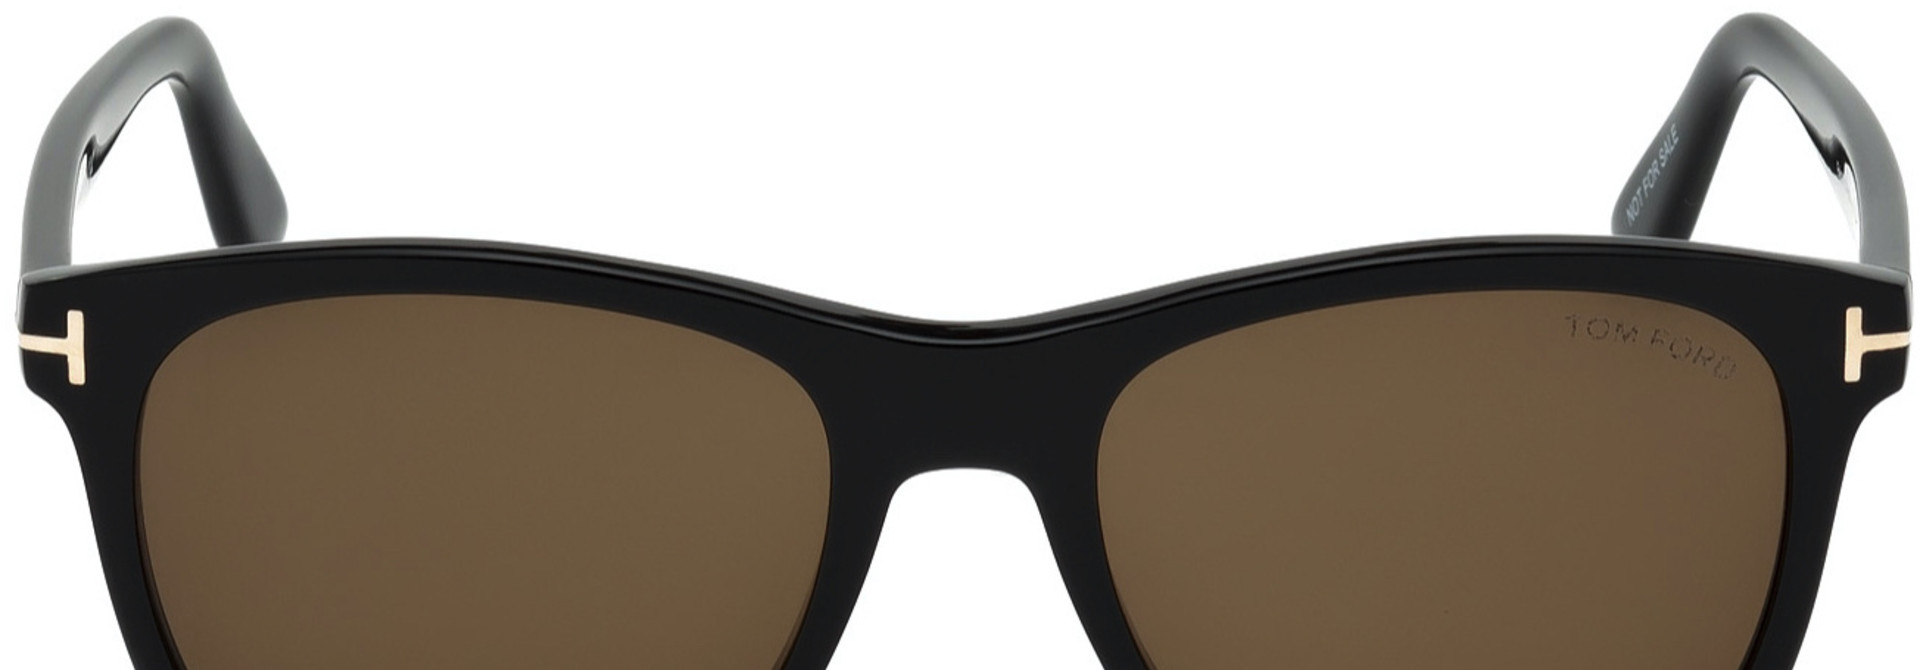 Tom Ford Eric TF595 01J